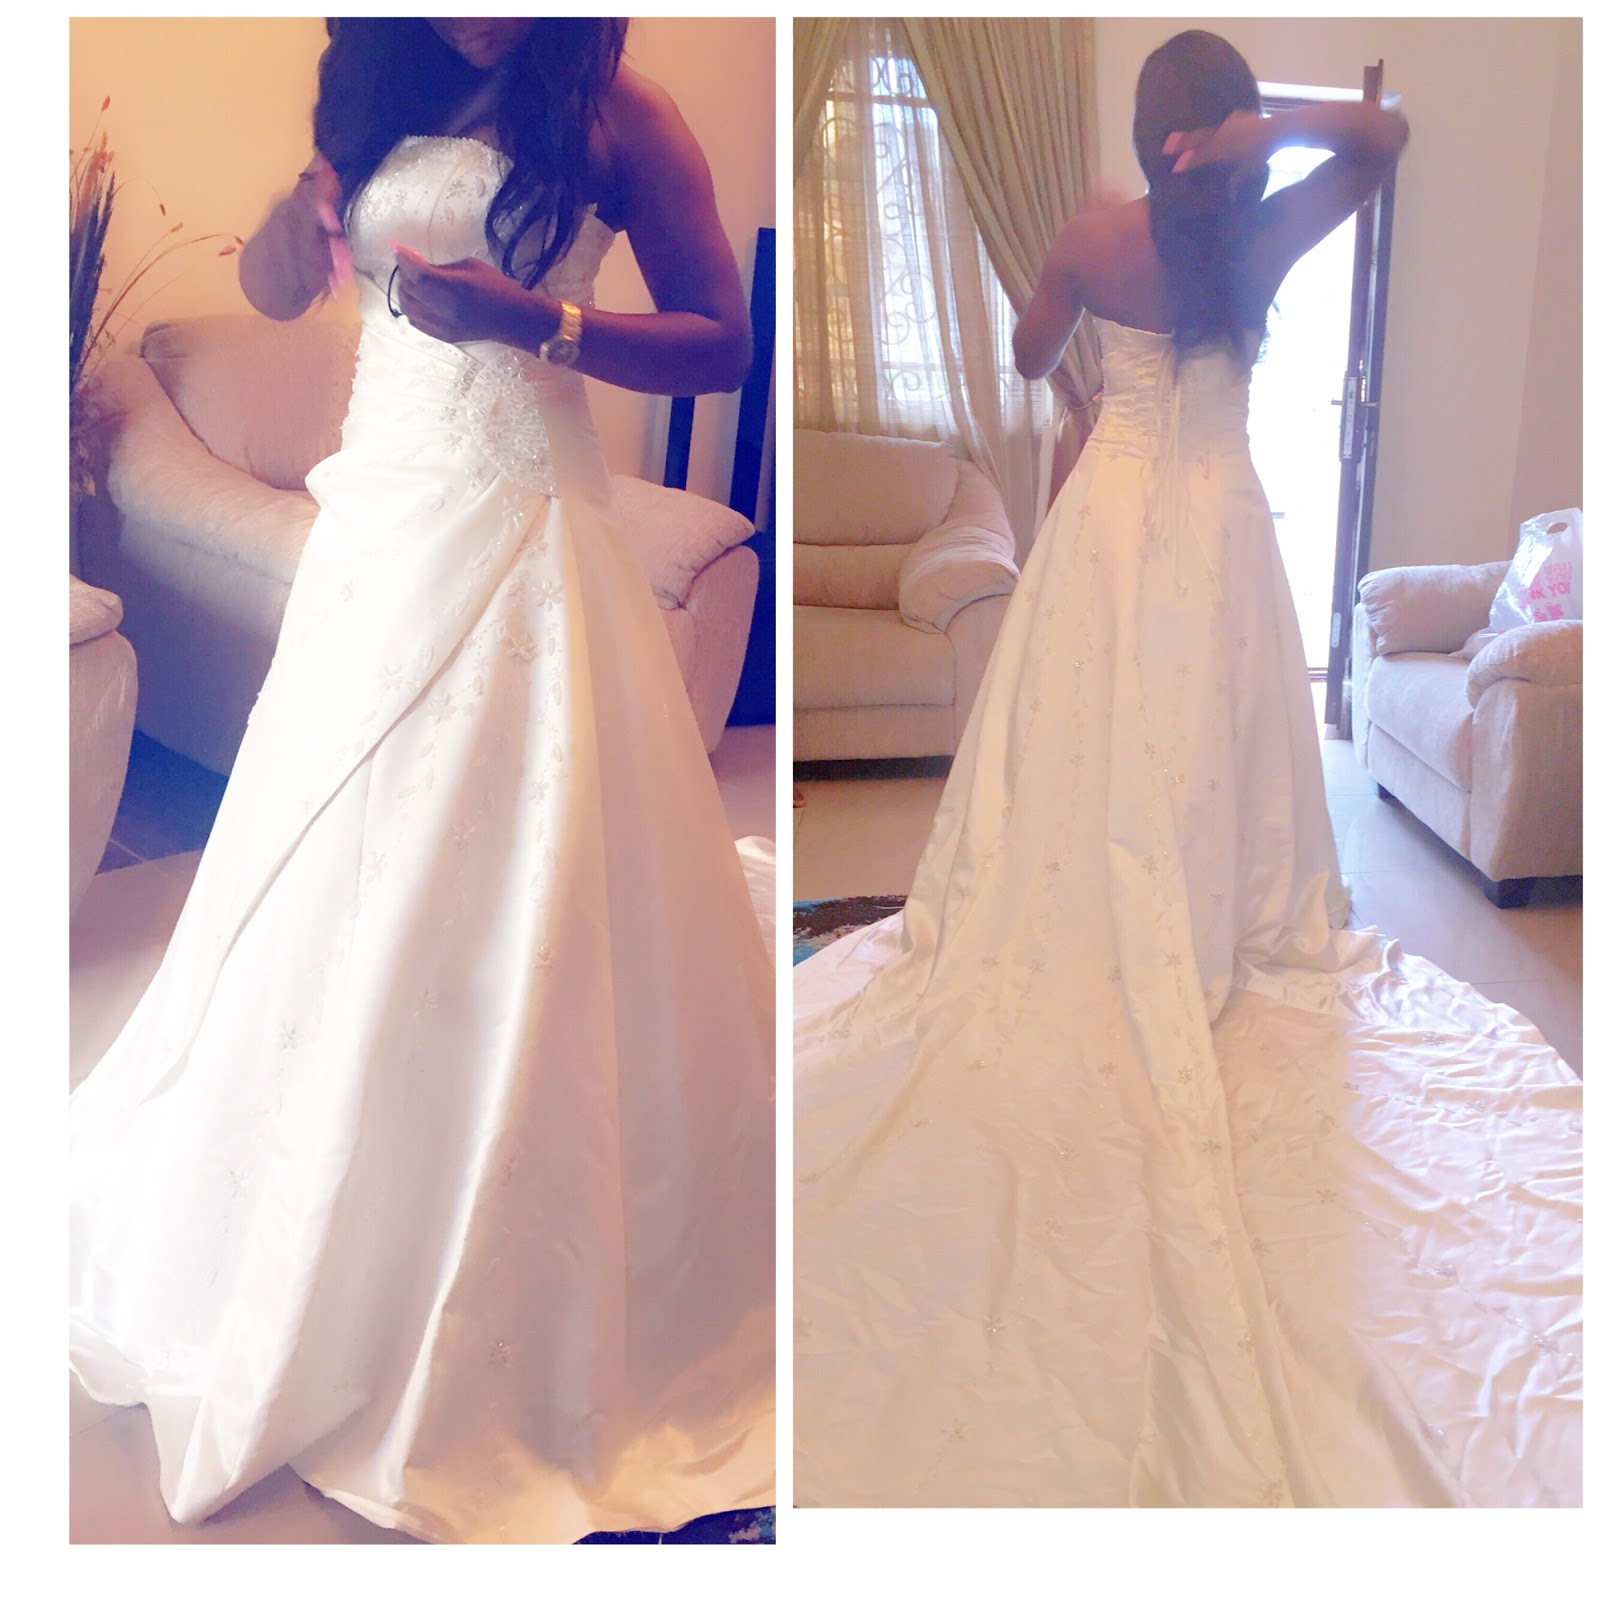 Wedding Dress Buyers 0 Marvelous Any serious or interested